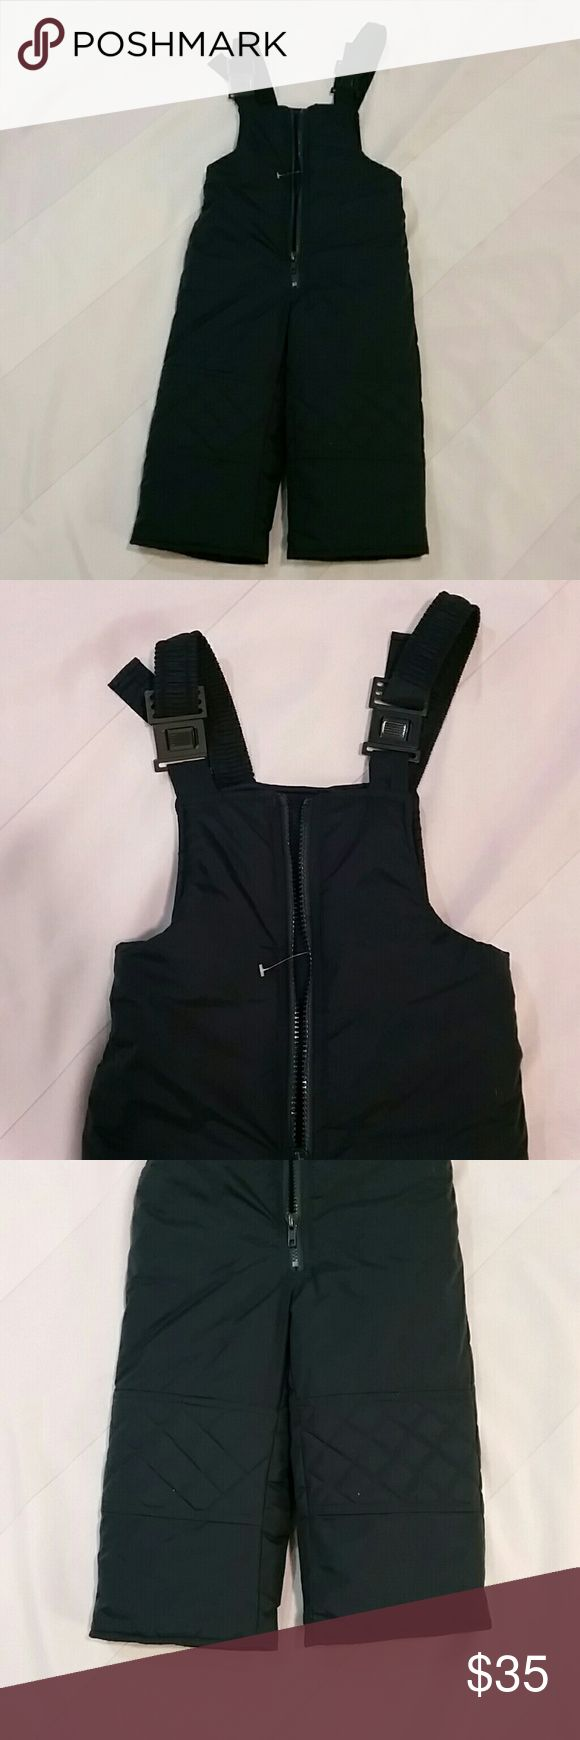 Kids Snow Ski Bibs Pants Suit size 3T P17. Very good condition. Deep dark Green color. Other